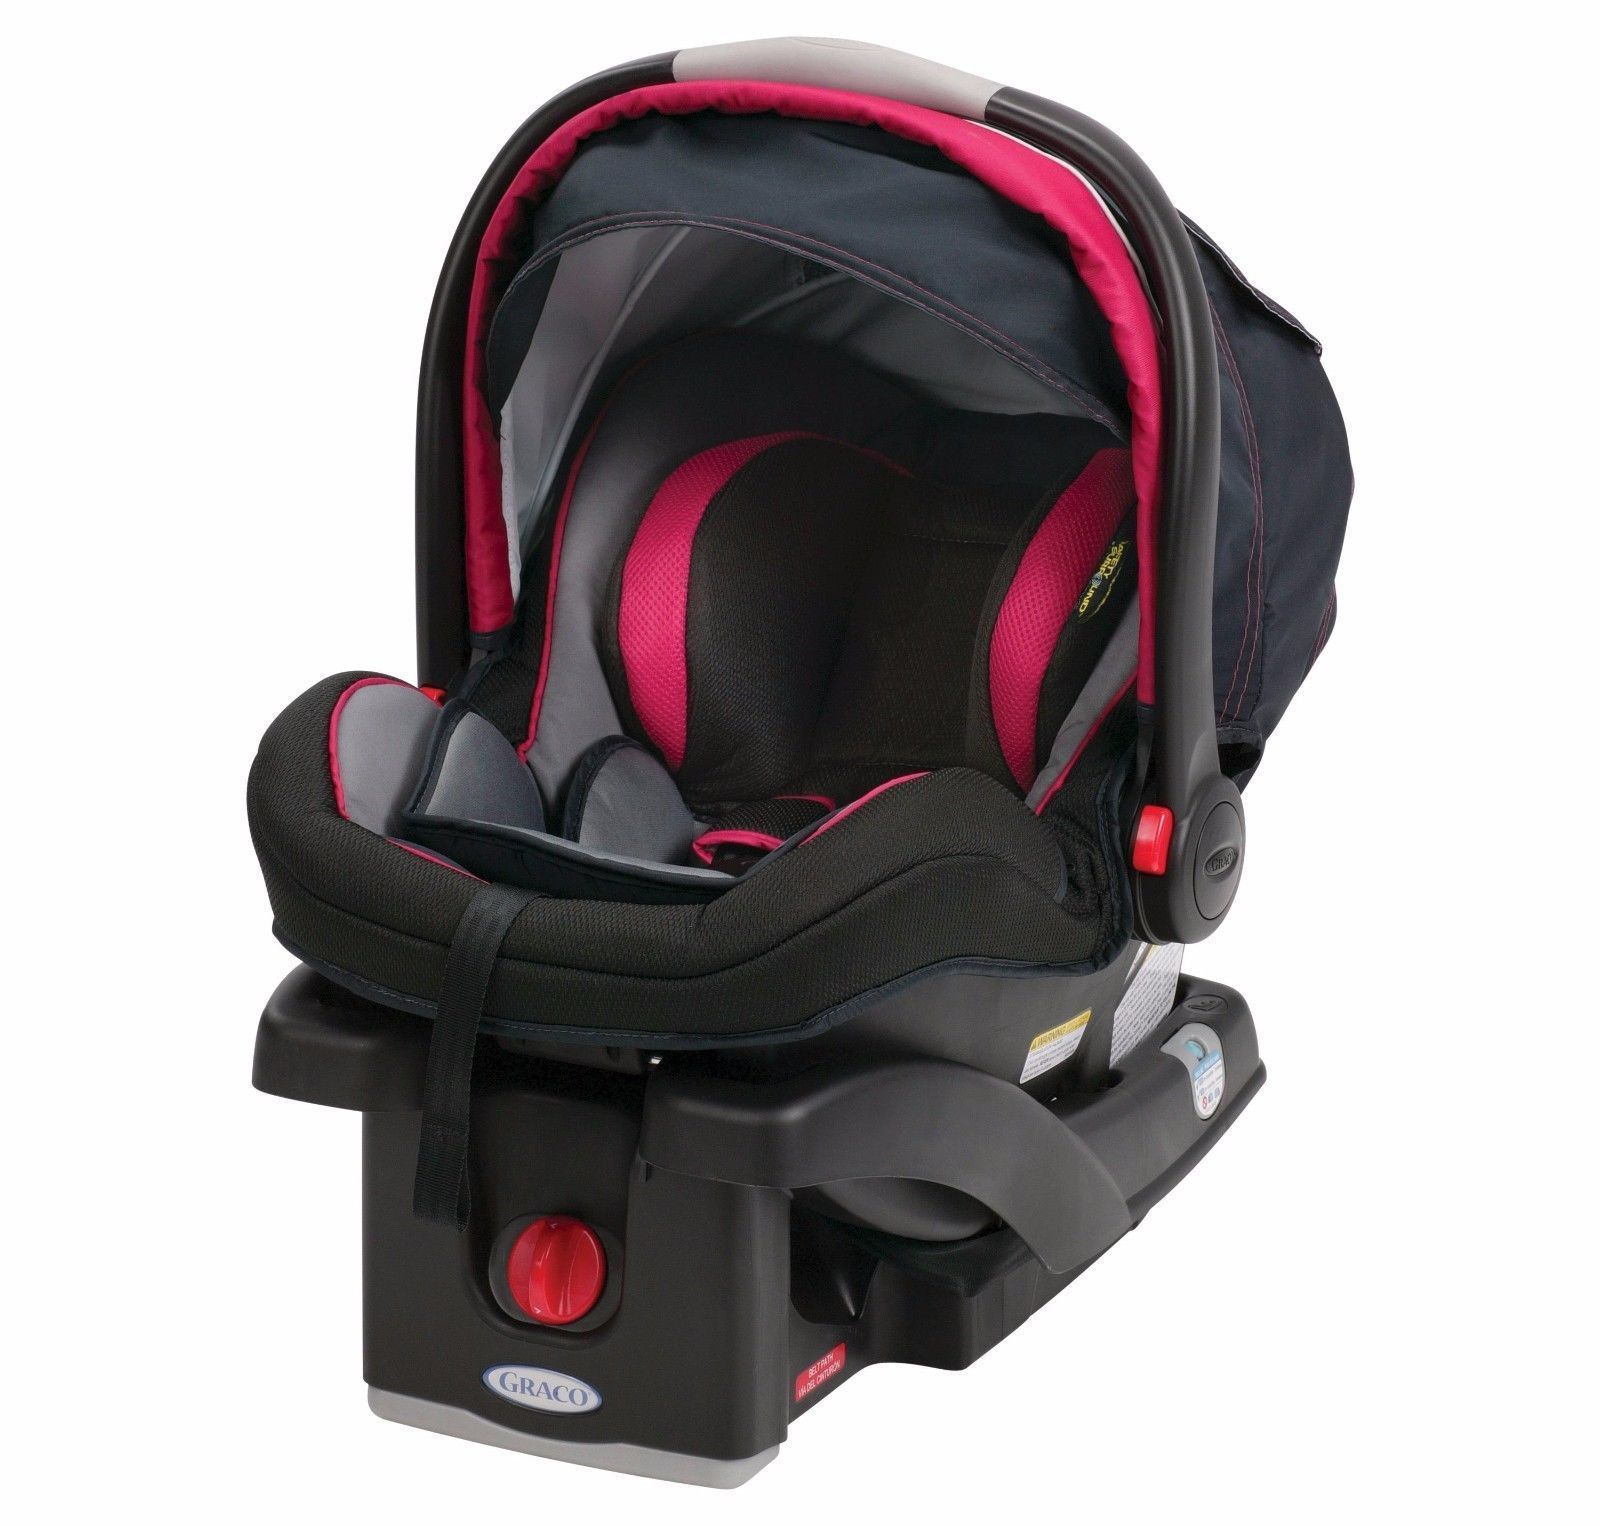 New Graco SnugRide® 35 LX Infant Car Seat with Safety